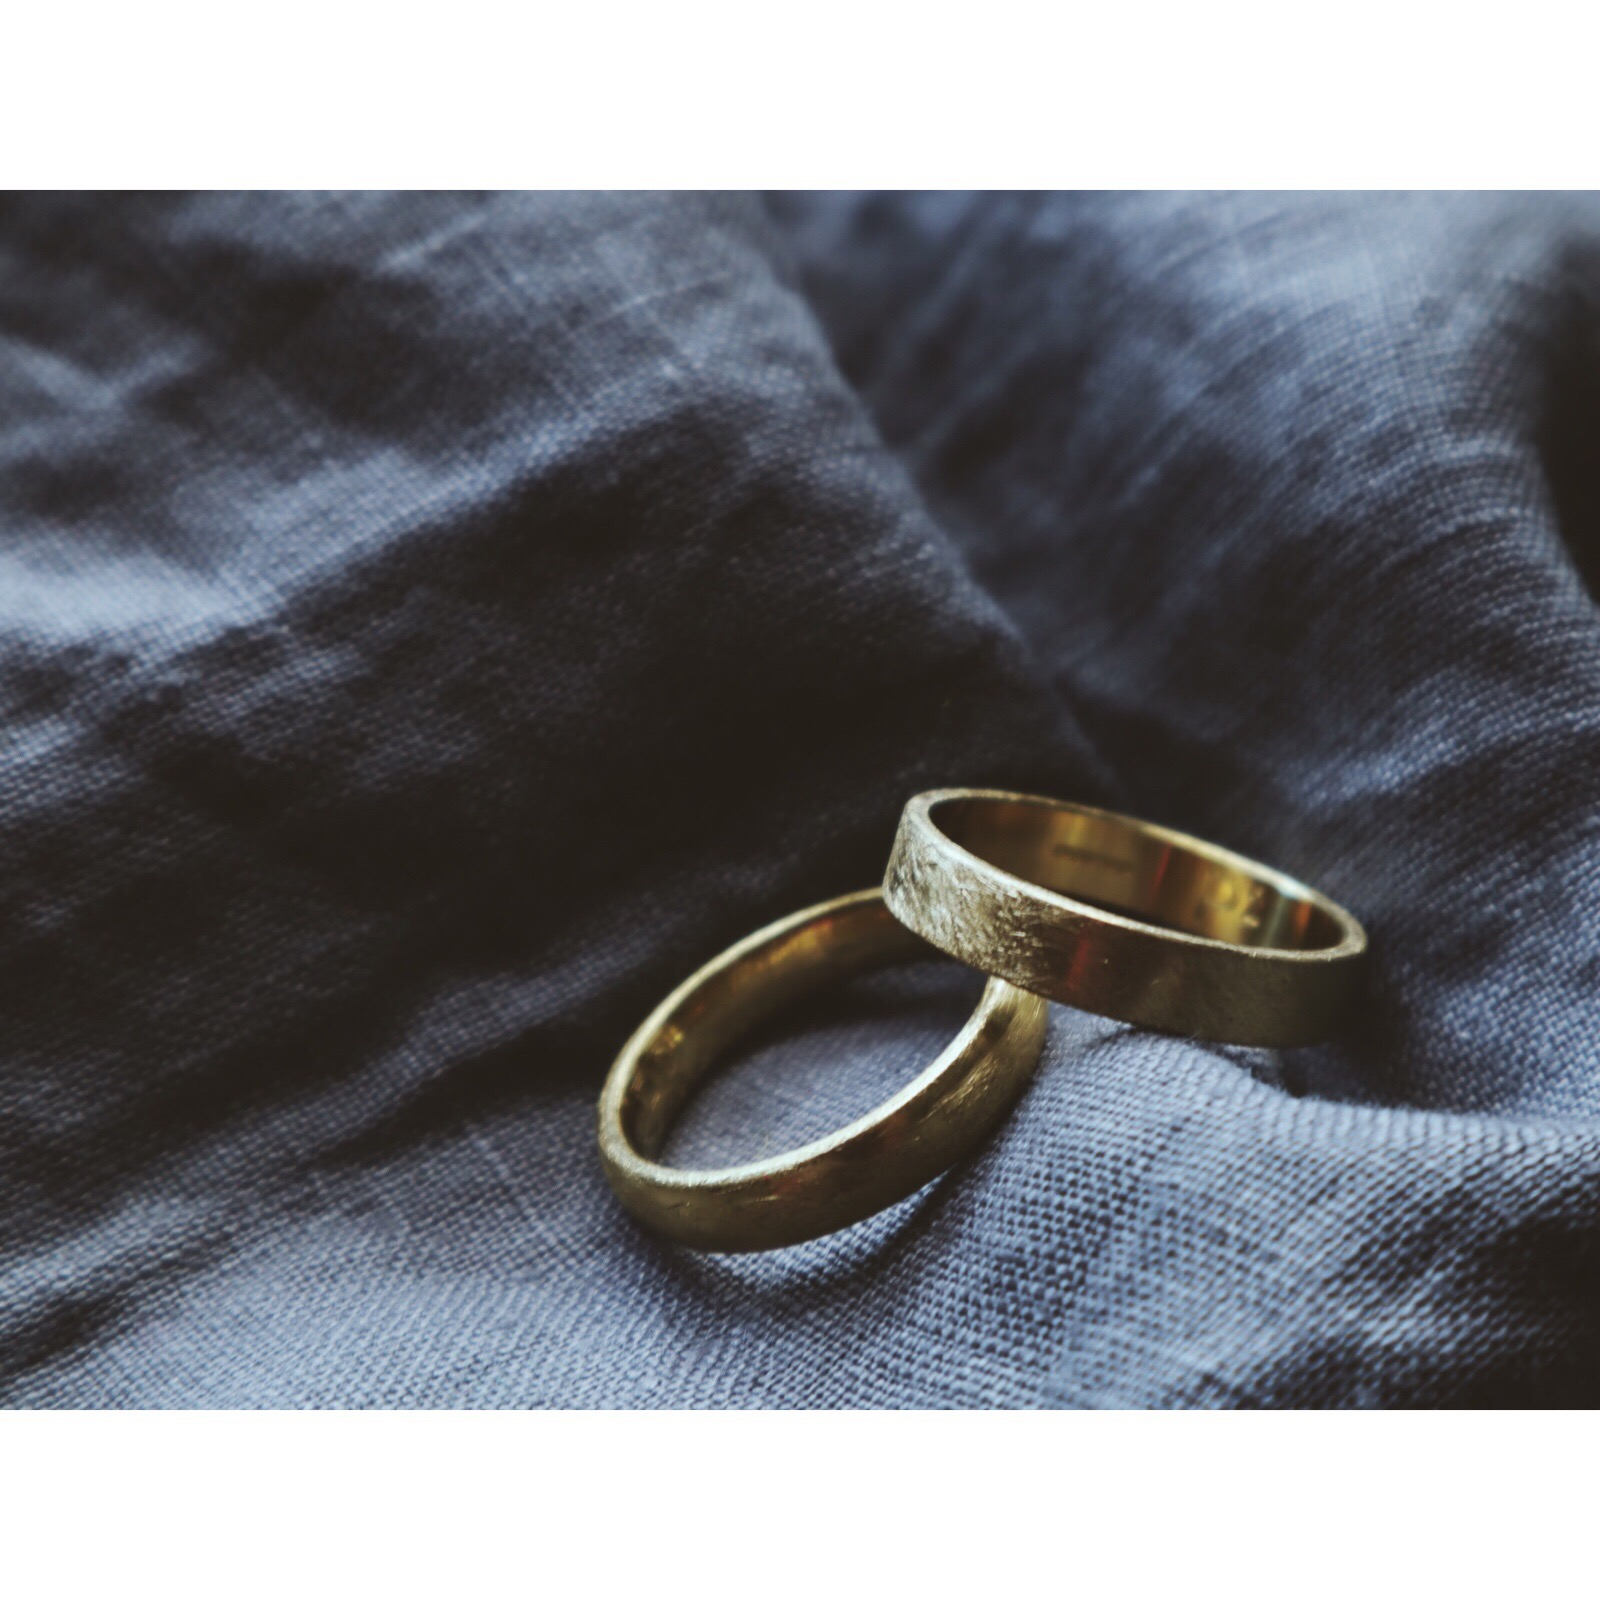 Richard and Rachel - Two 18ct yellow gold rings